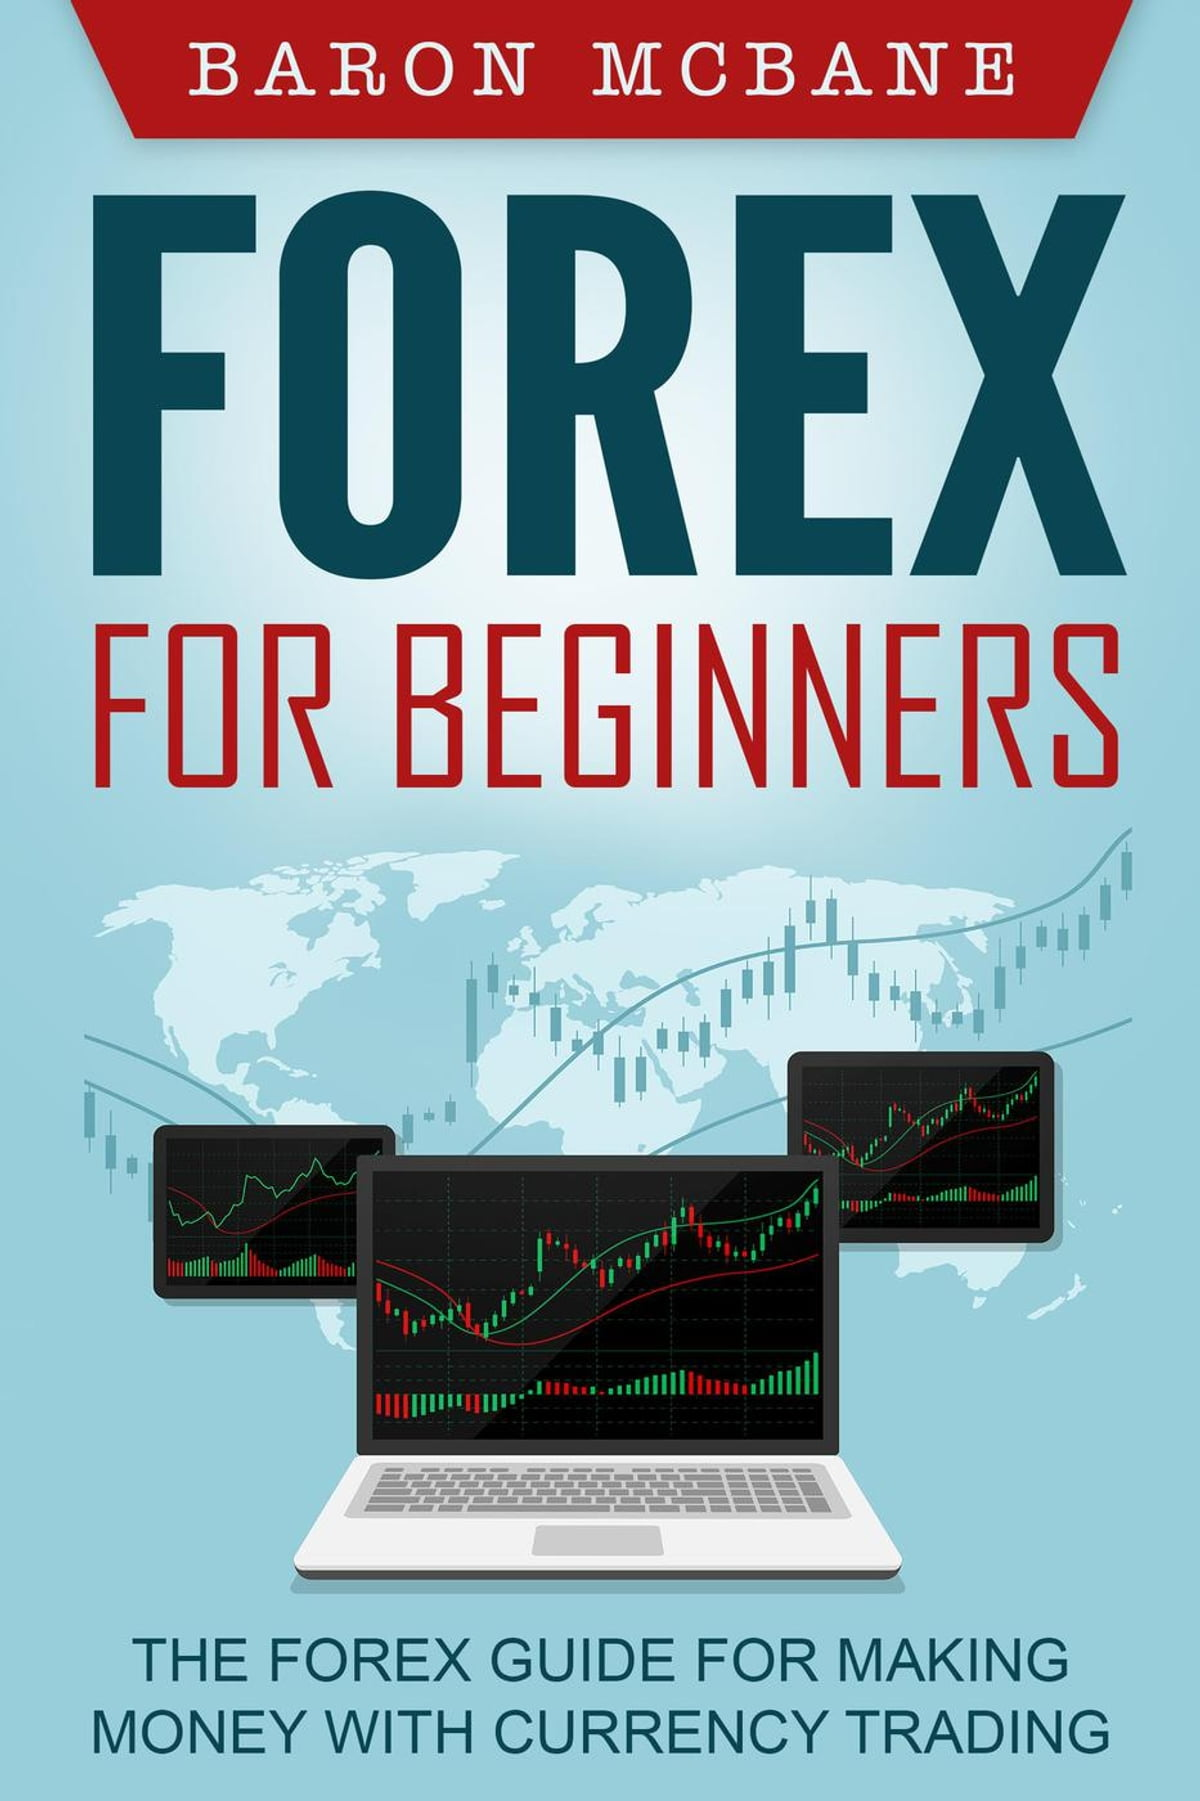 Making money with forex